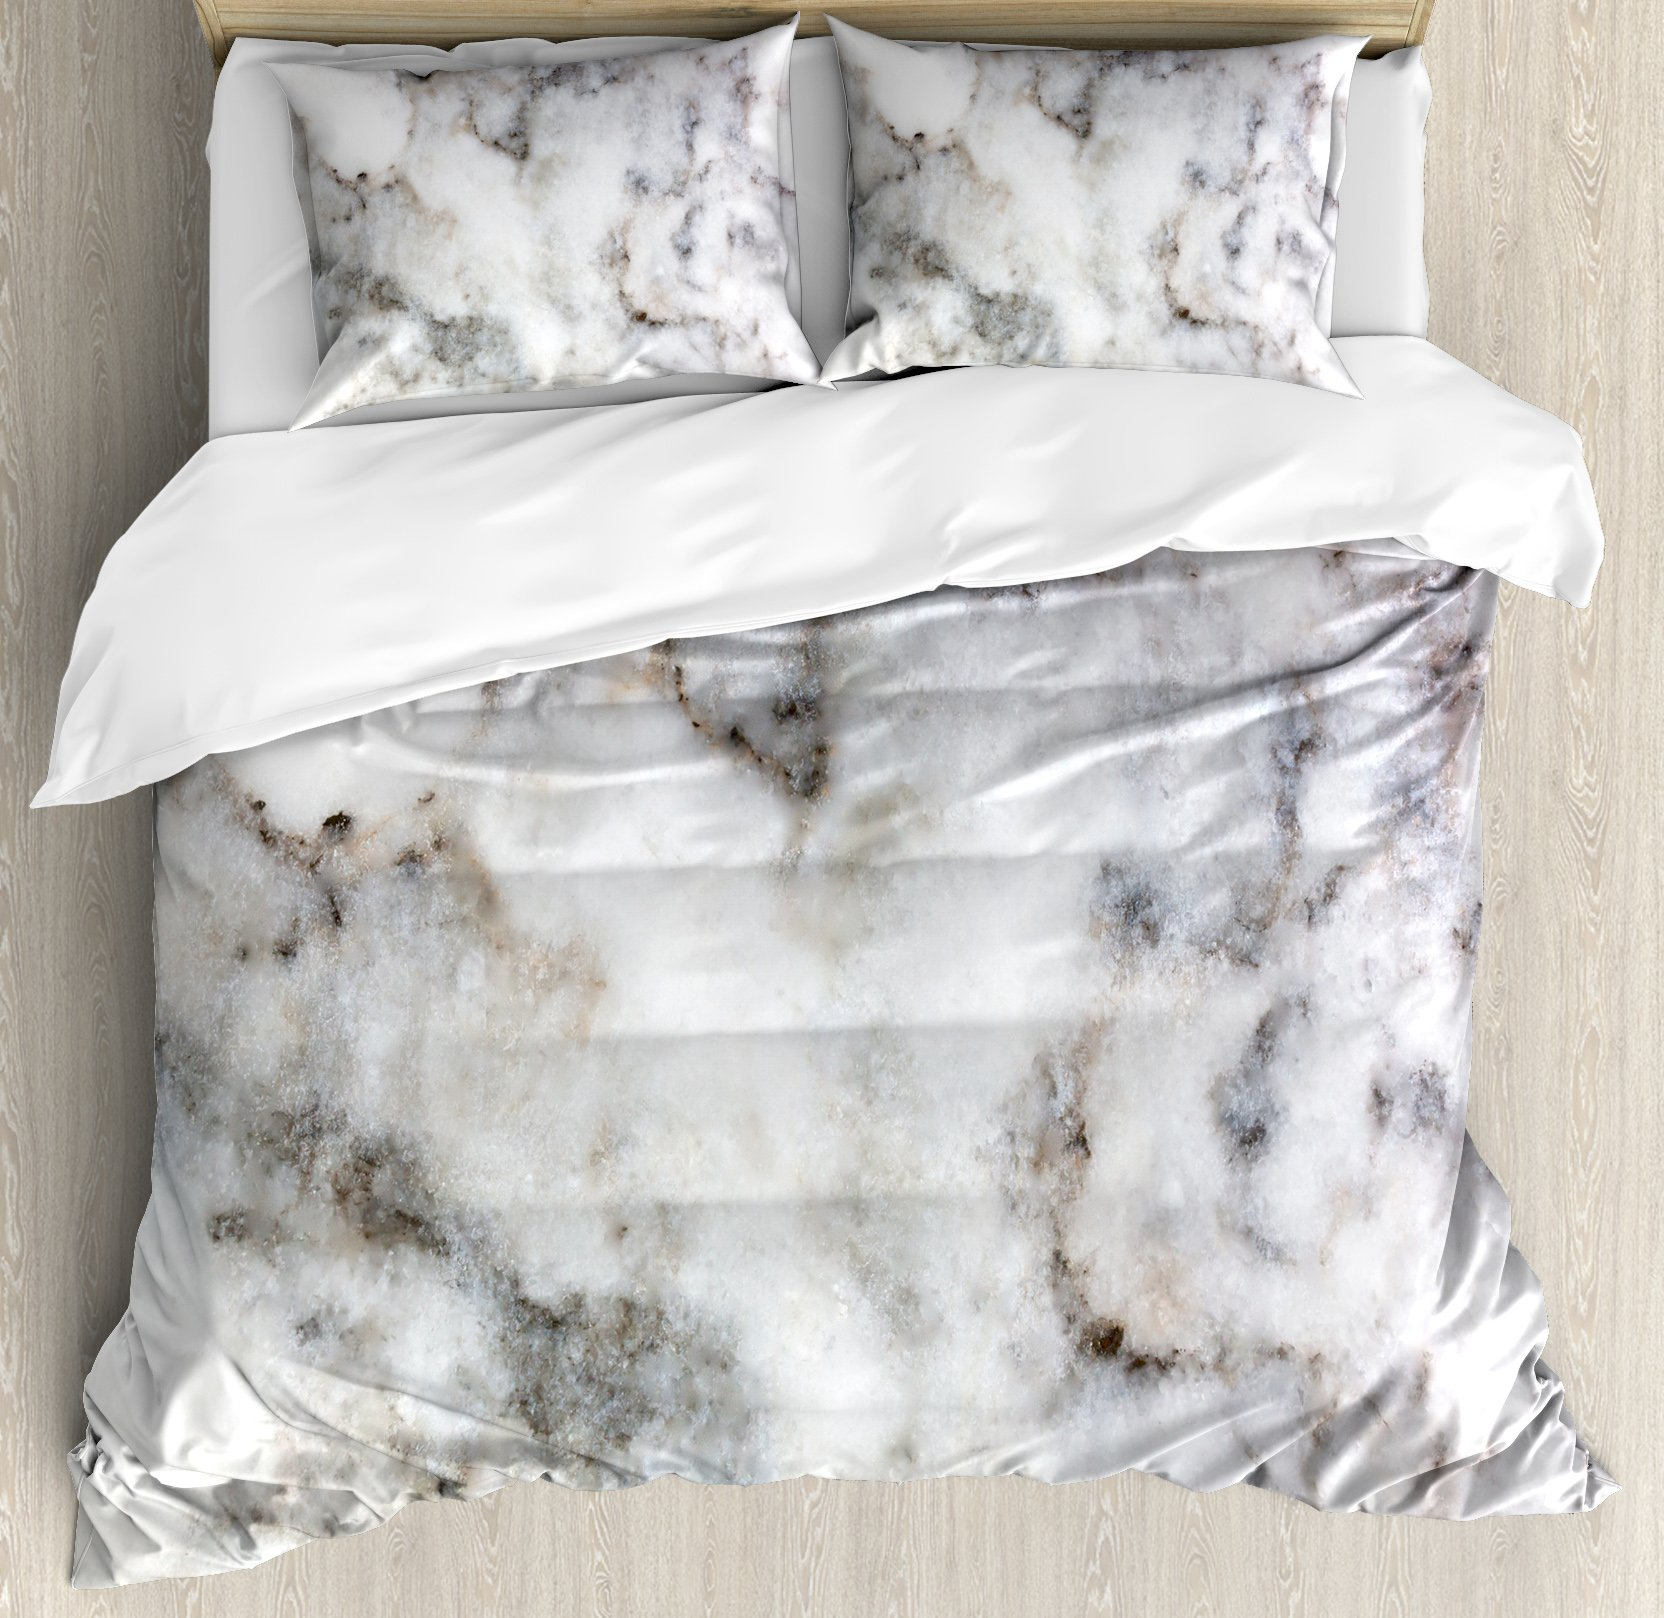 Marble Queen Size Duvet Cover Set by Ambesonne, Rock Pattern Limestone with Stain Traces Surface Artistic Authentic Design, Decorative 3 Piece Bedding Set with 2 Pillow Shams, Dust Grey White